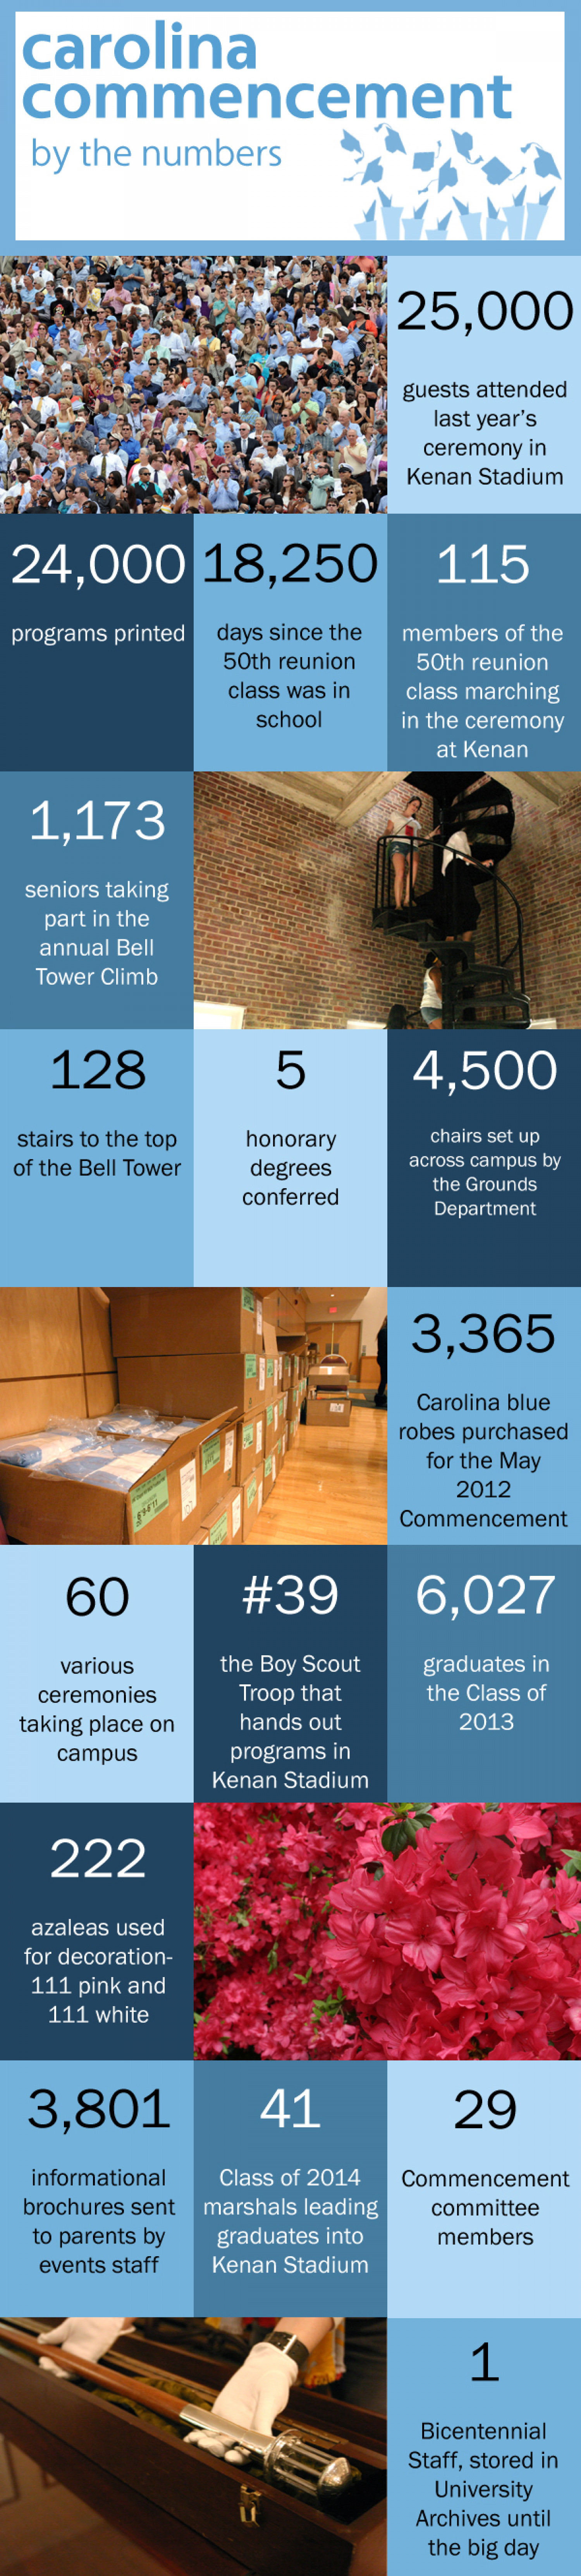 Carolina Commencement by the numbers Infographic